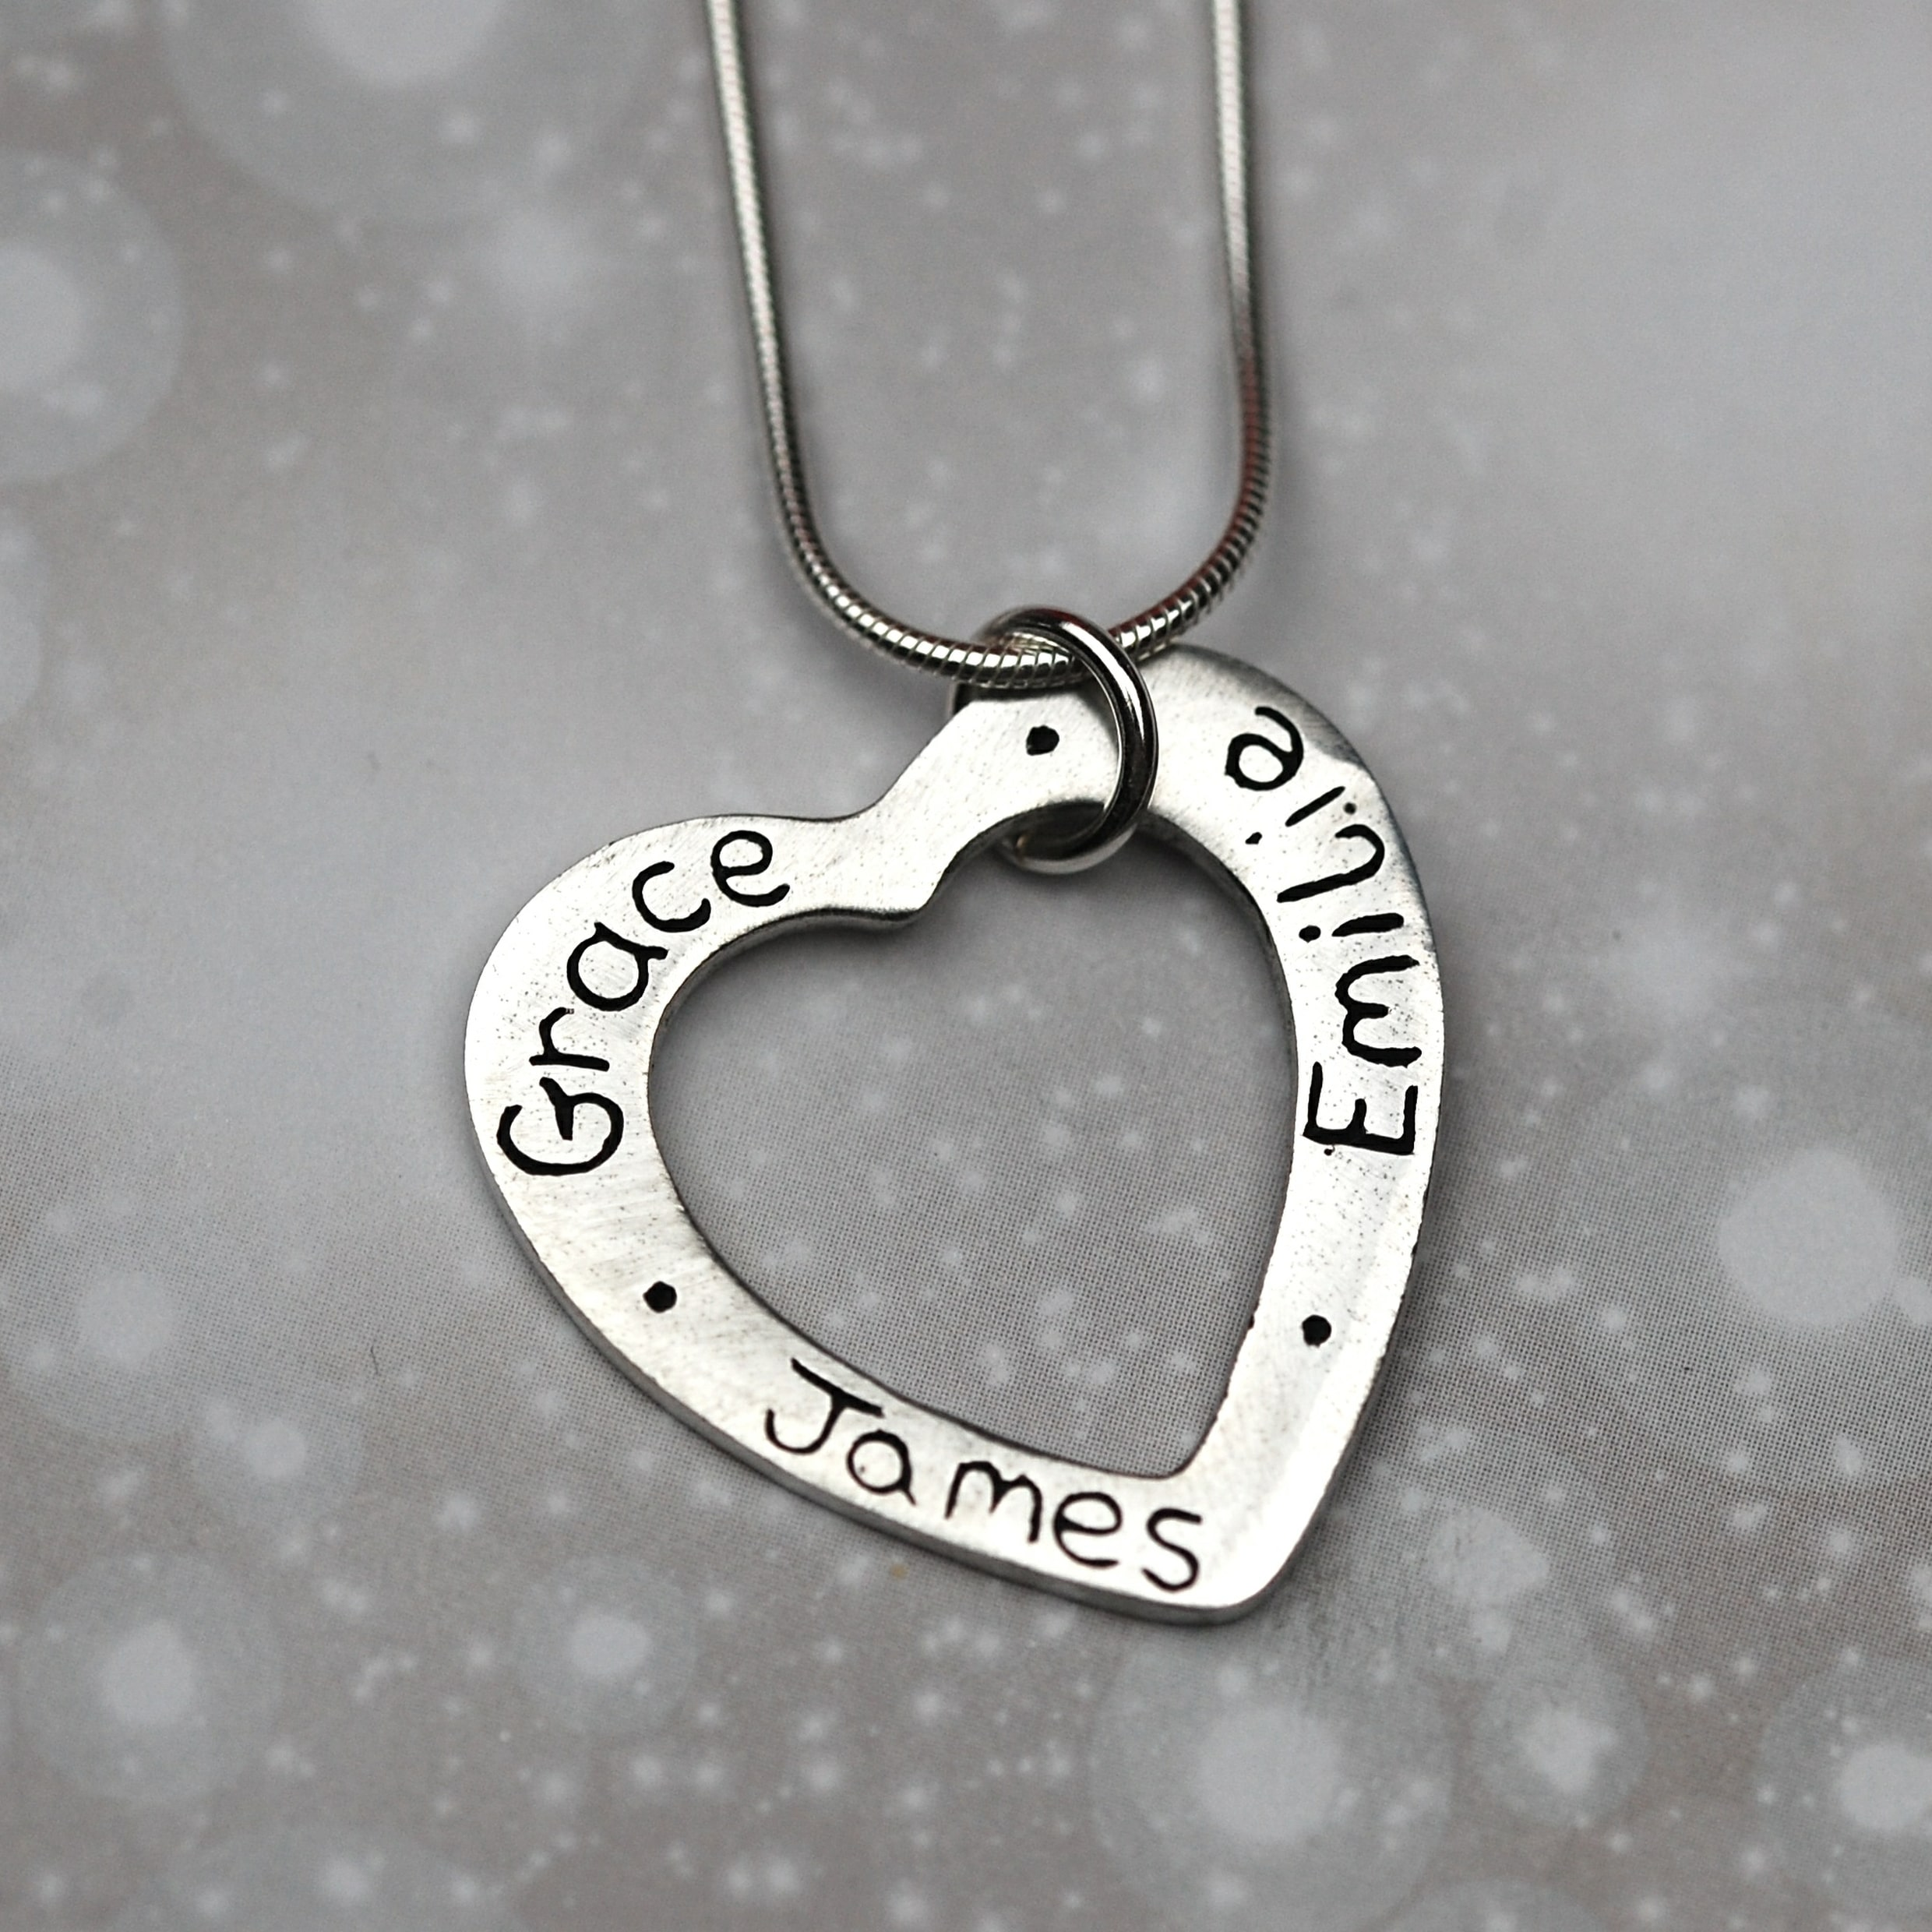 e91c1c18bef9d Say It In Silver Name Charm